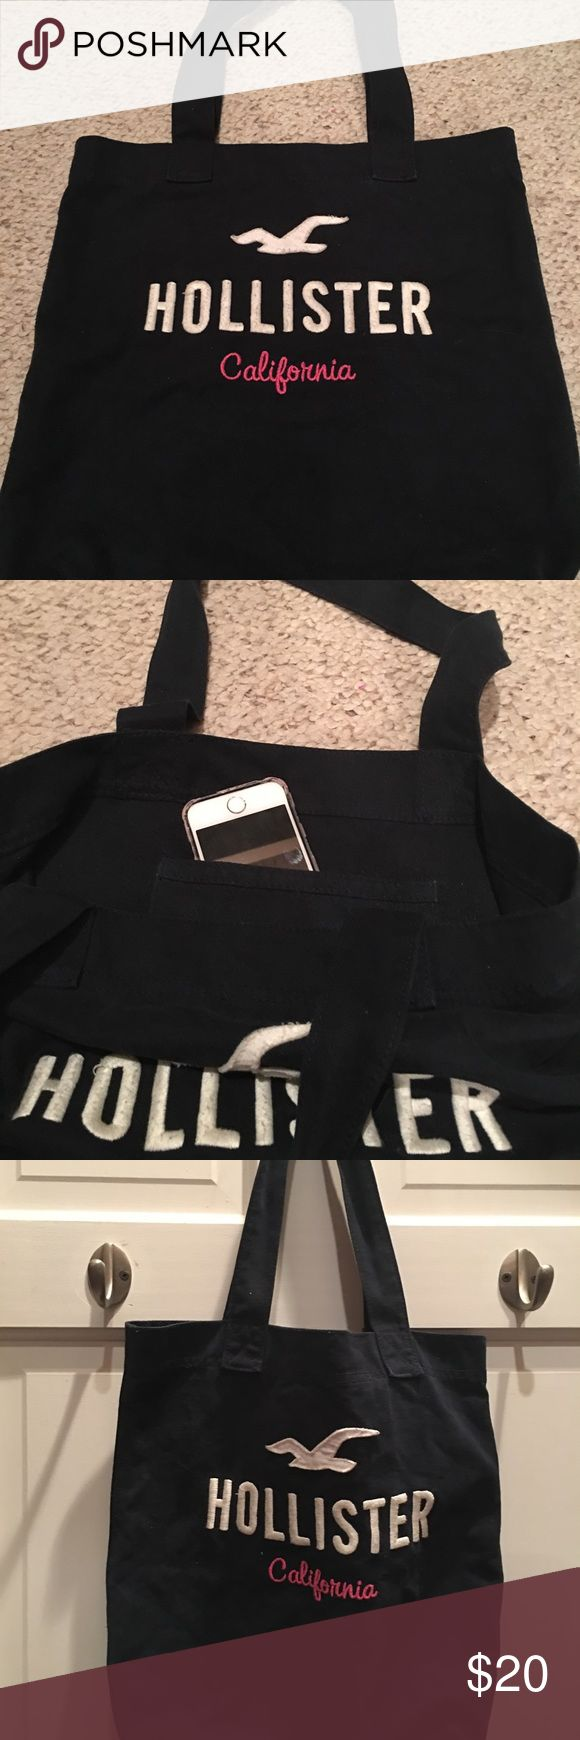 NWOT Hollister tote bag Hollister Tote bag. Small pocket on the inside, perfect for a cell phone! Navy blue with white and pink lettering. Excellent condition!!!!! Hollister Bags Totes